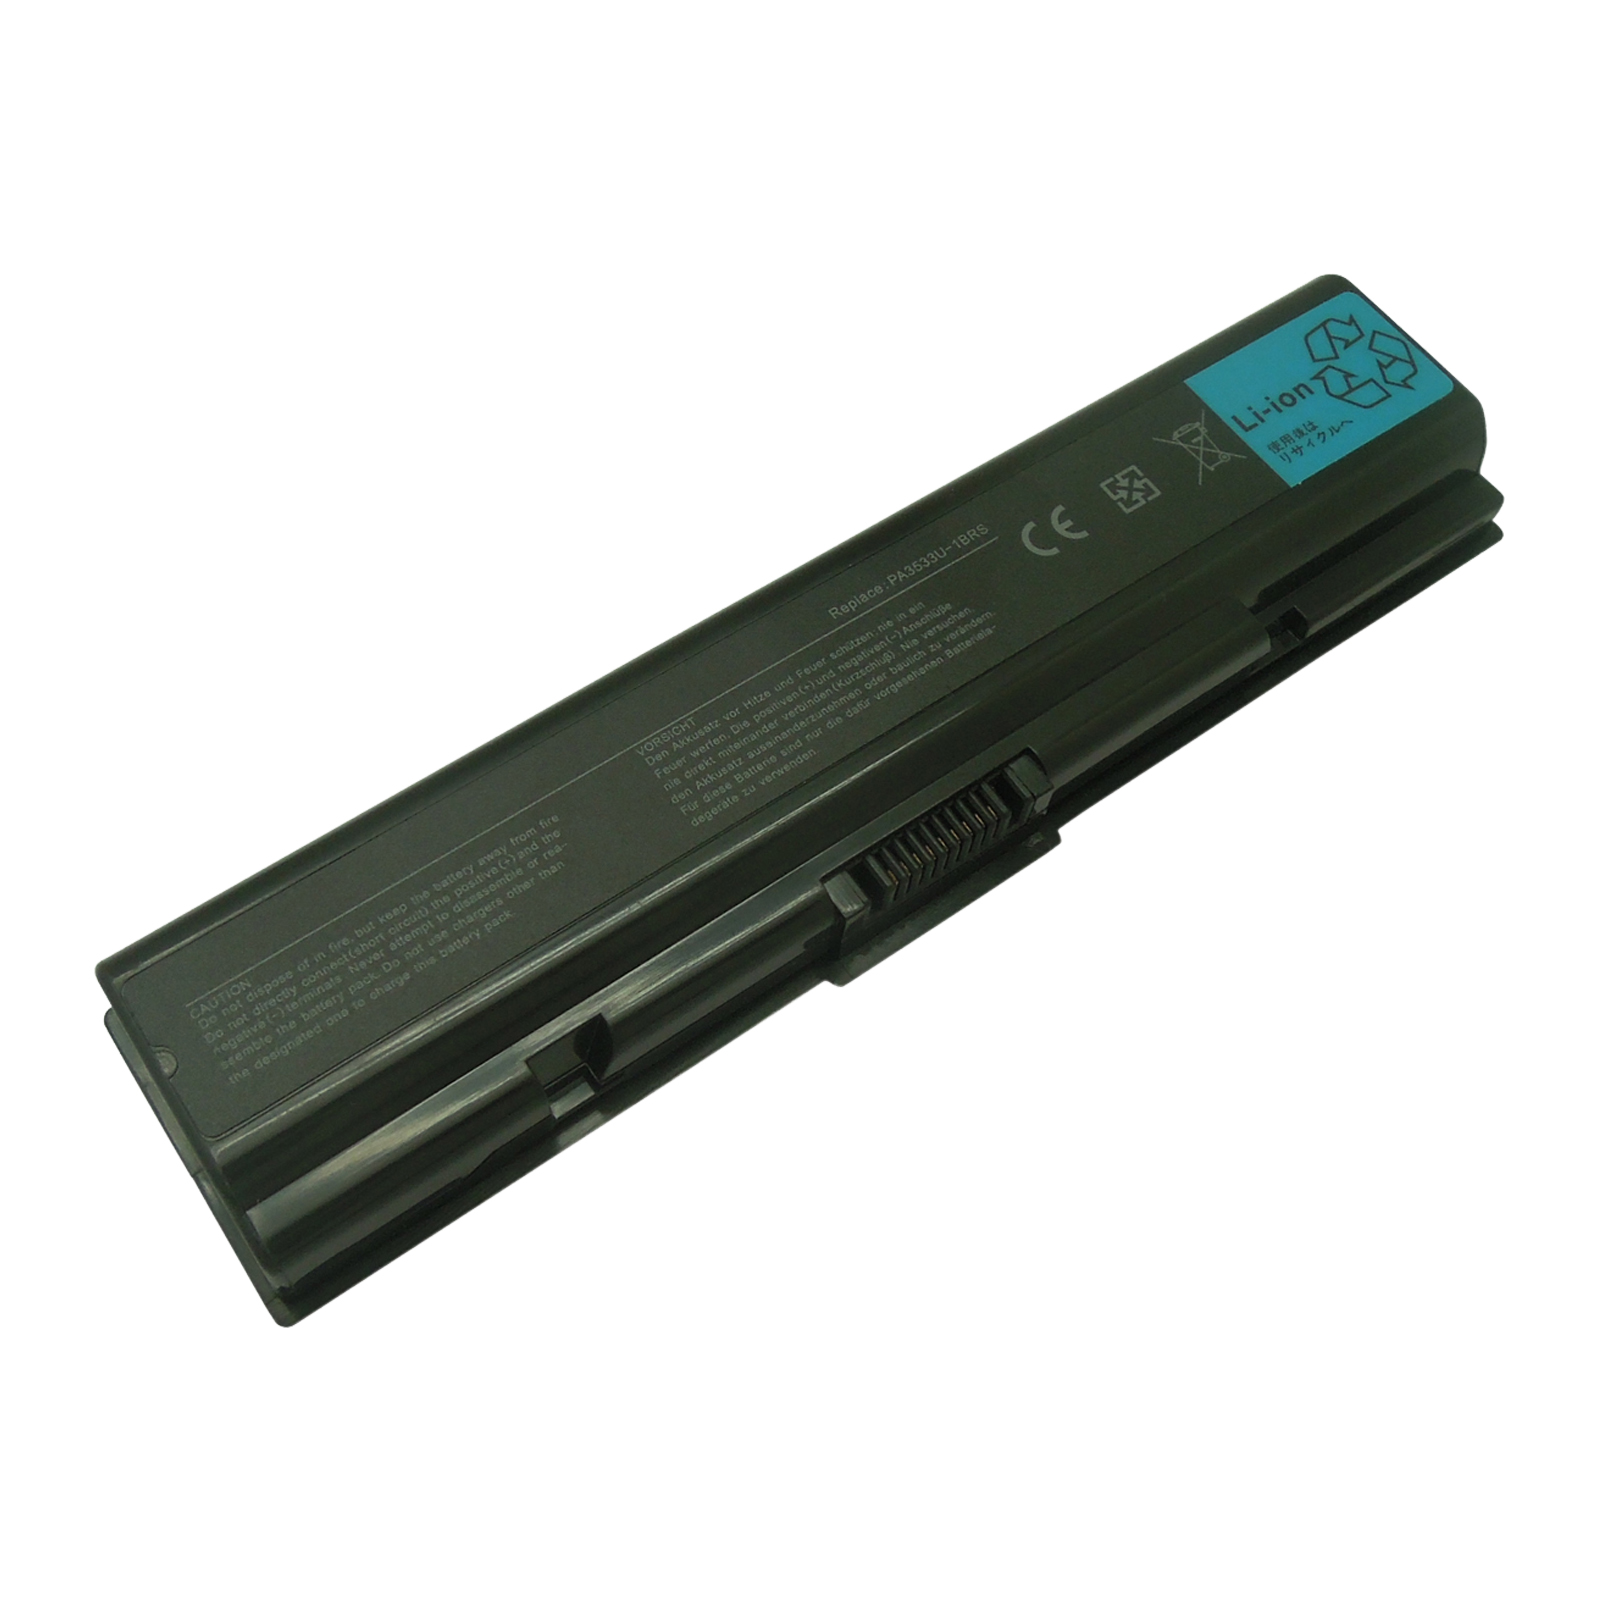 TOSHIBA Satellite A505-S6980 A505-S6960 A505-S6005 Laptop USB Connector 2-Port